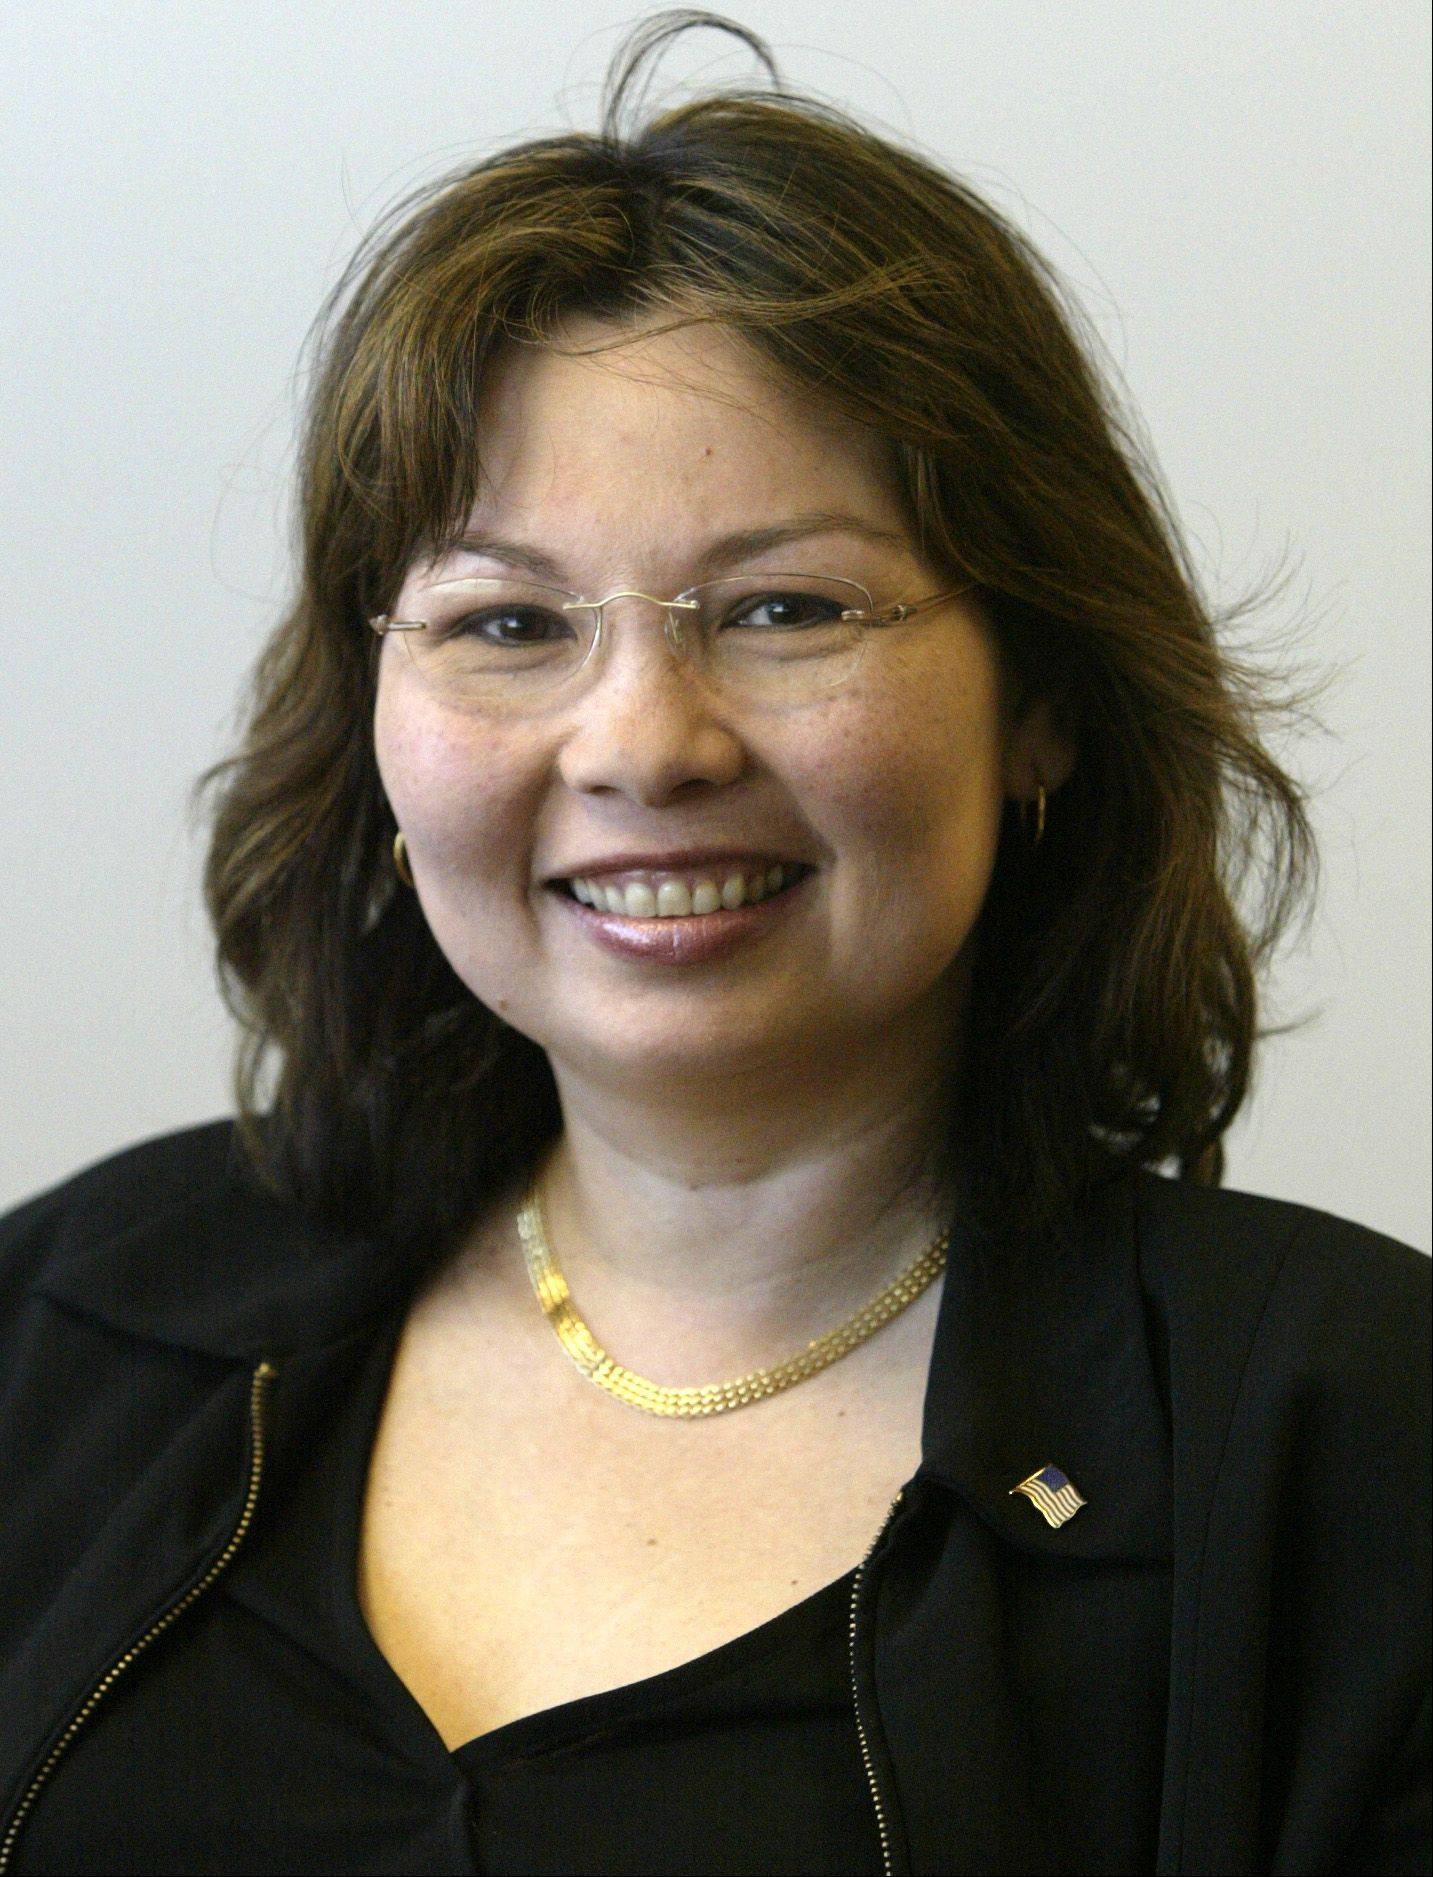 Tammy Duckworth, Democrat candidate for 8th District U.S. representative.